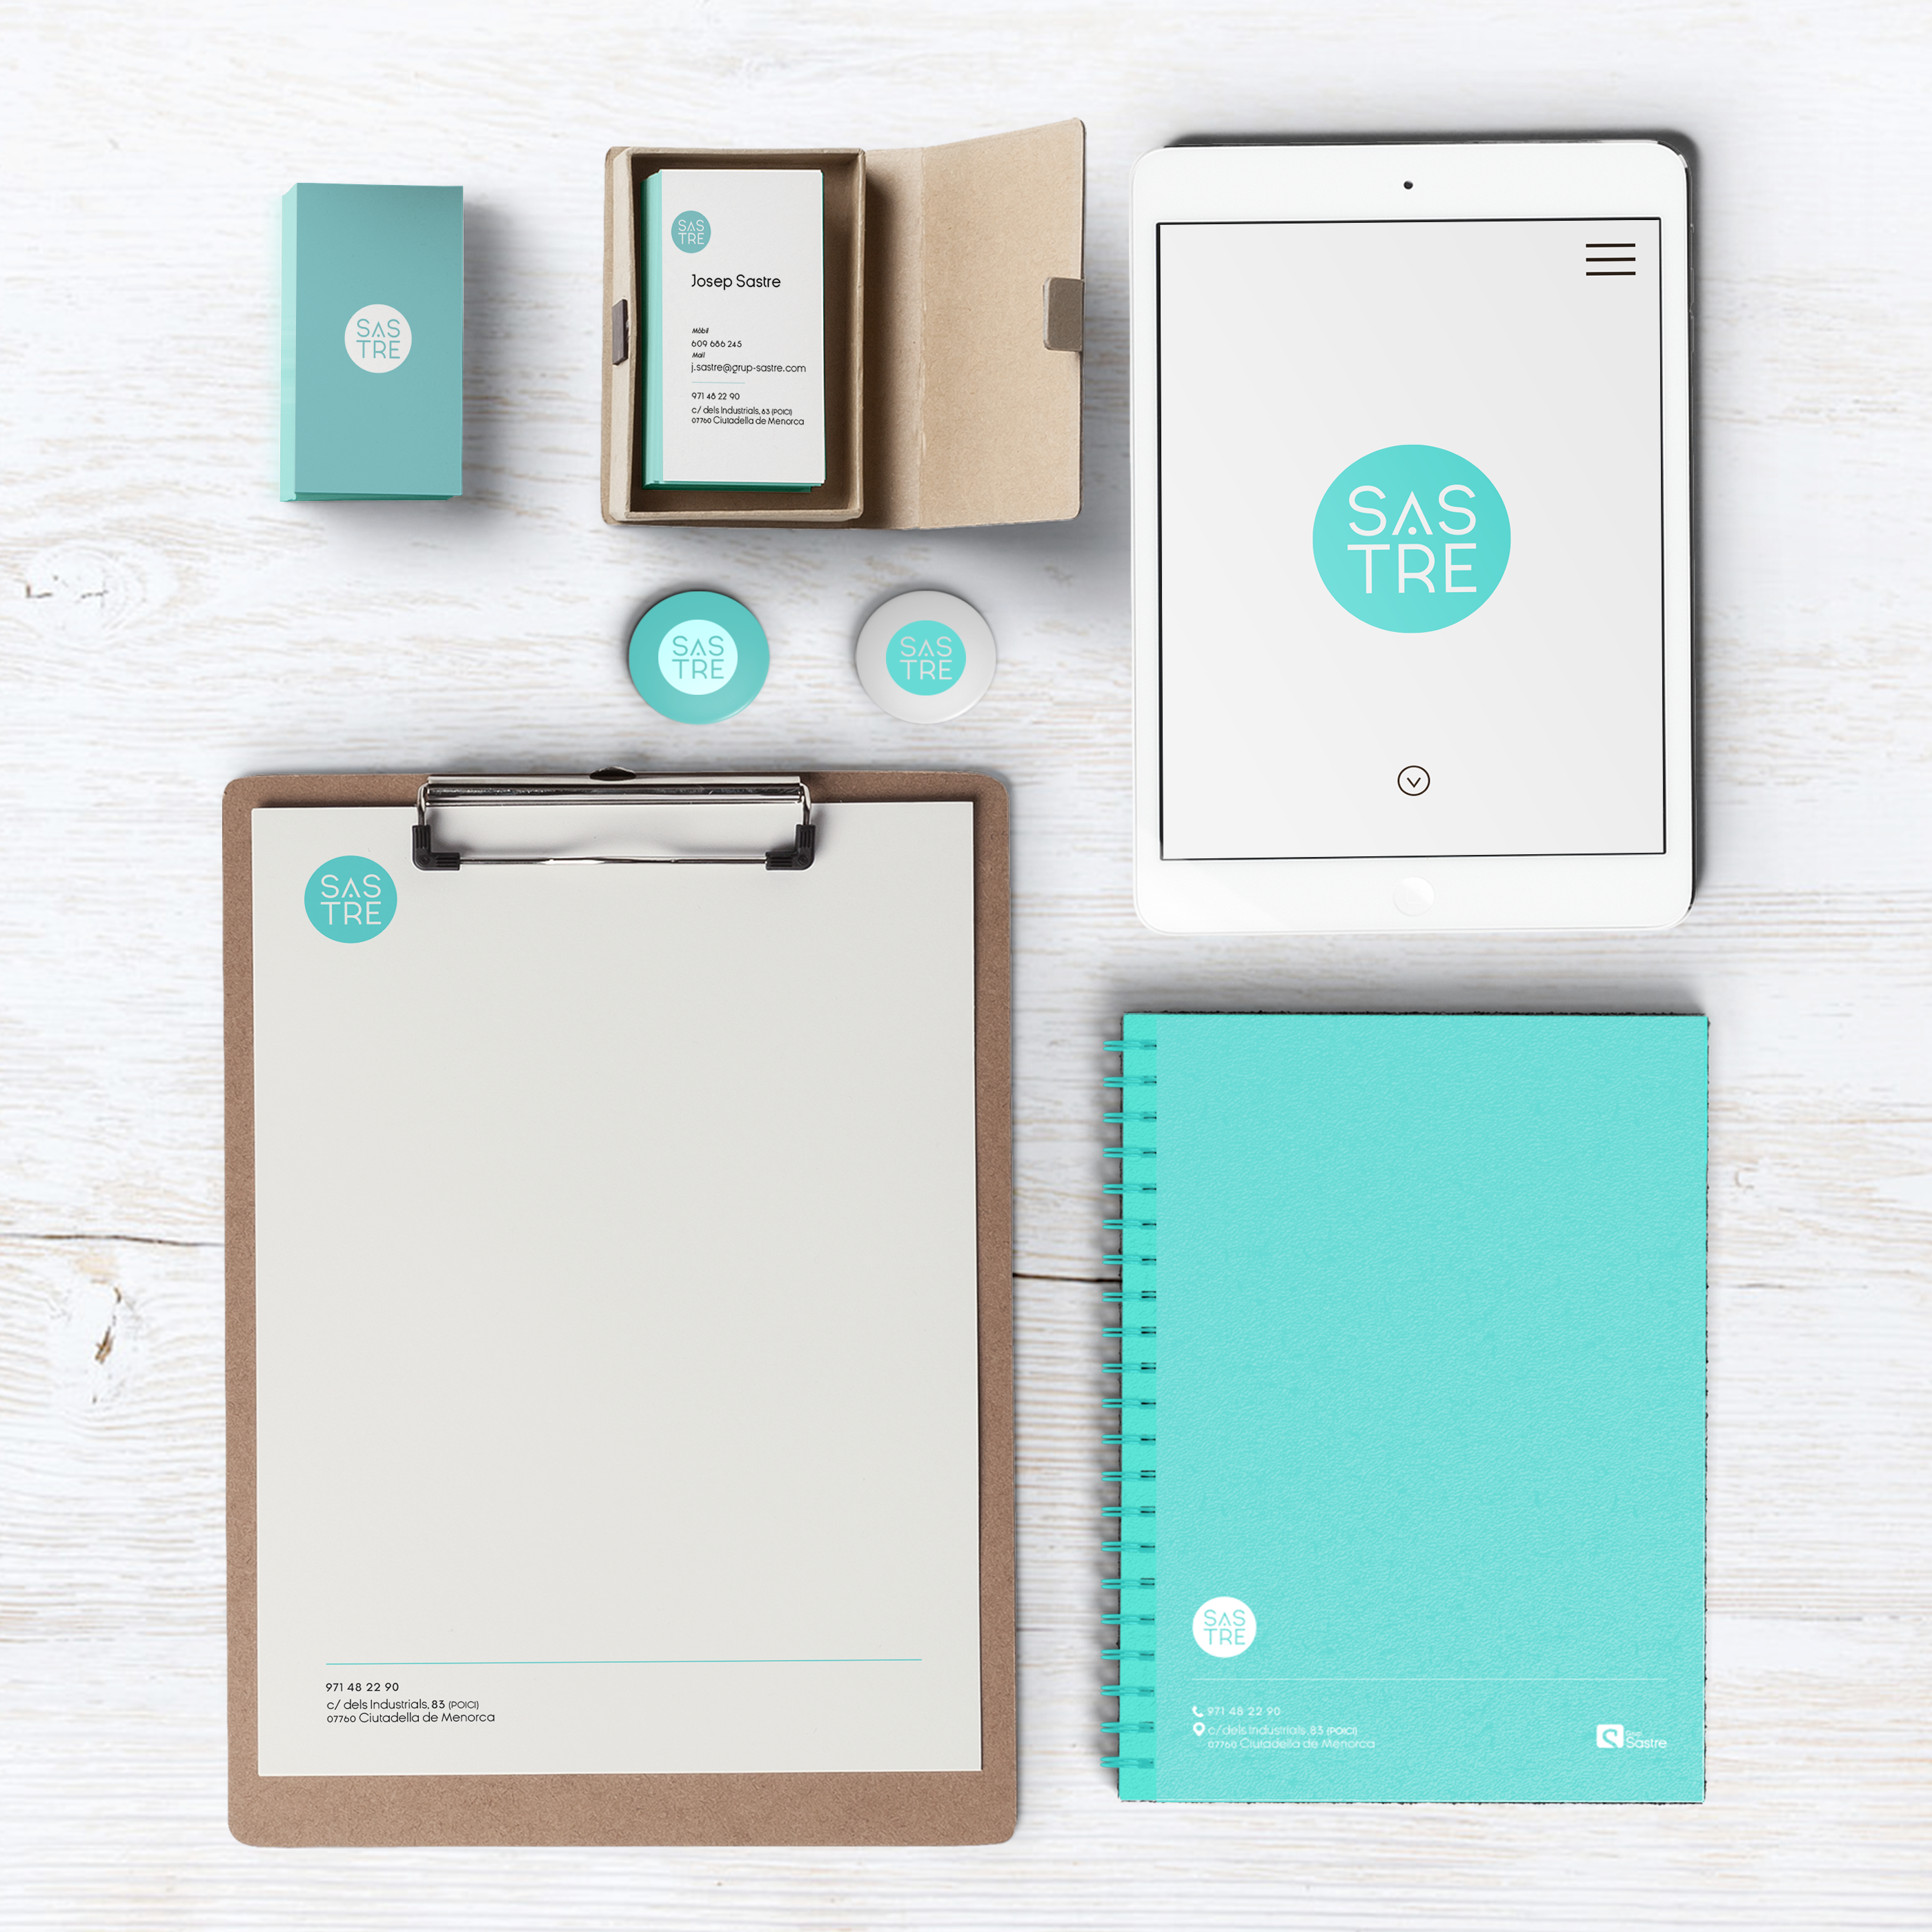 http://auppa.com/wp-content/uploads/2019/09/stationery-sastre.png